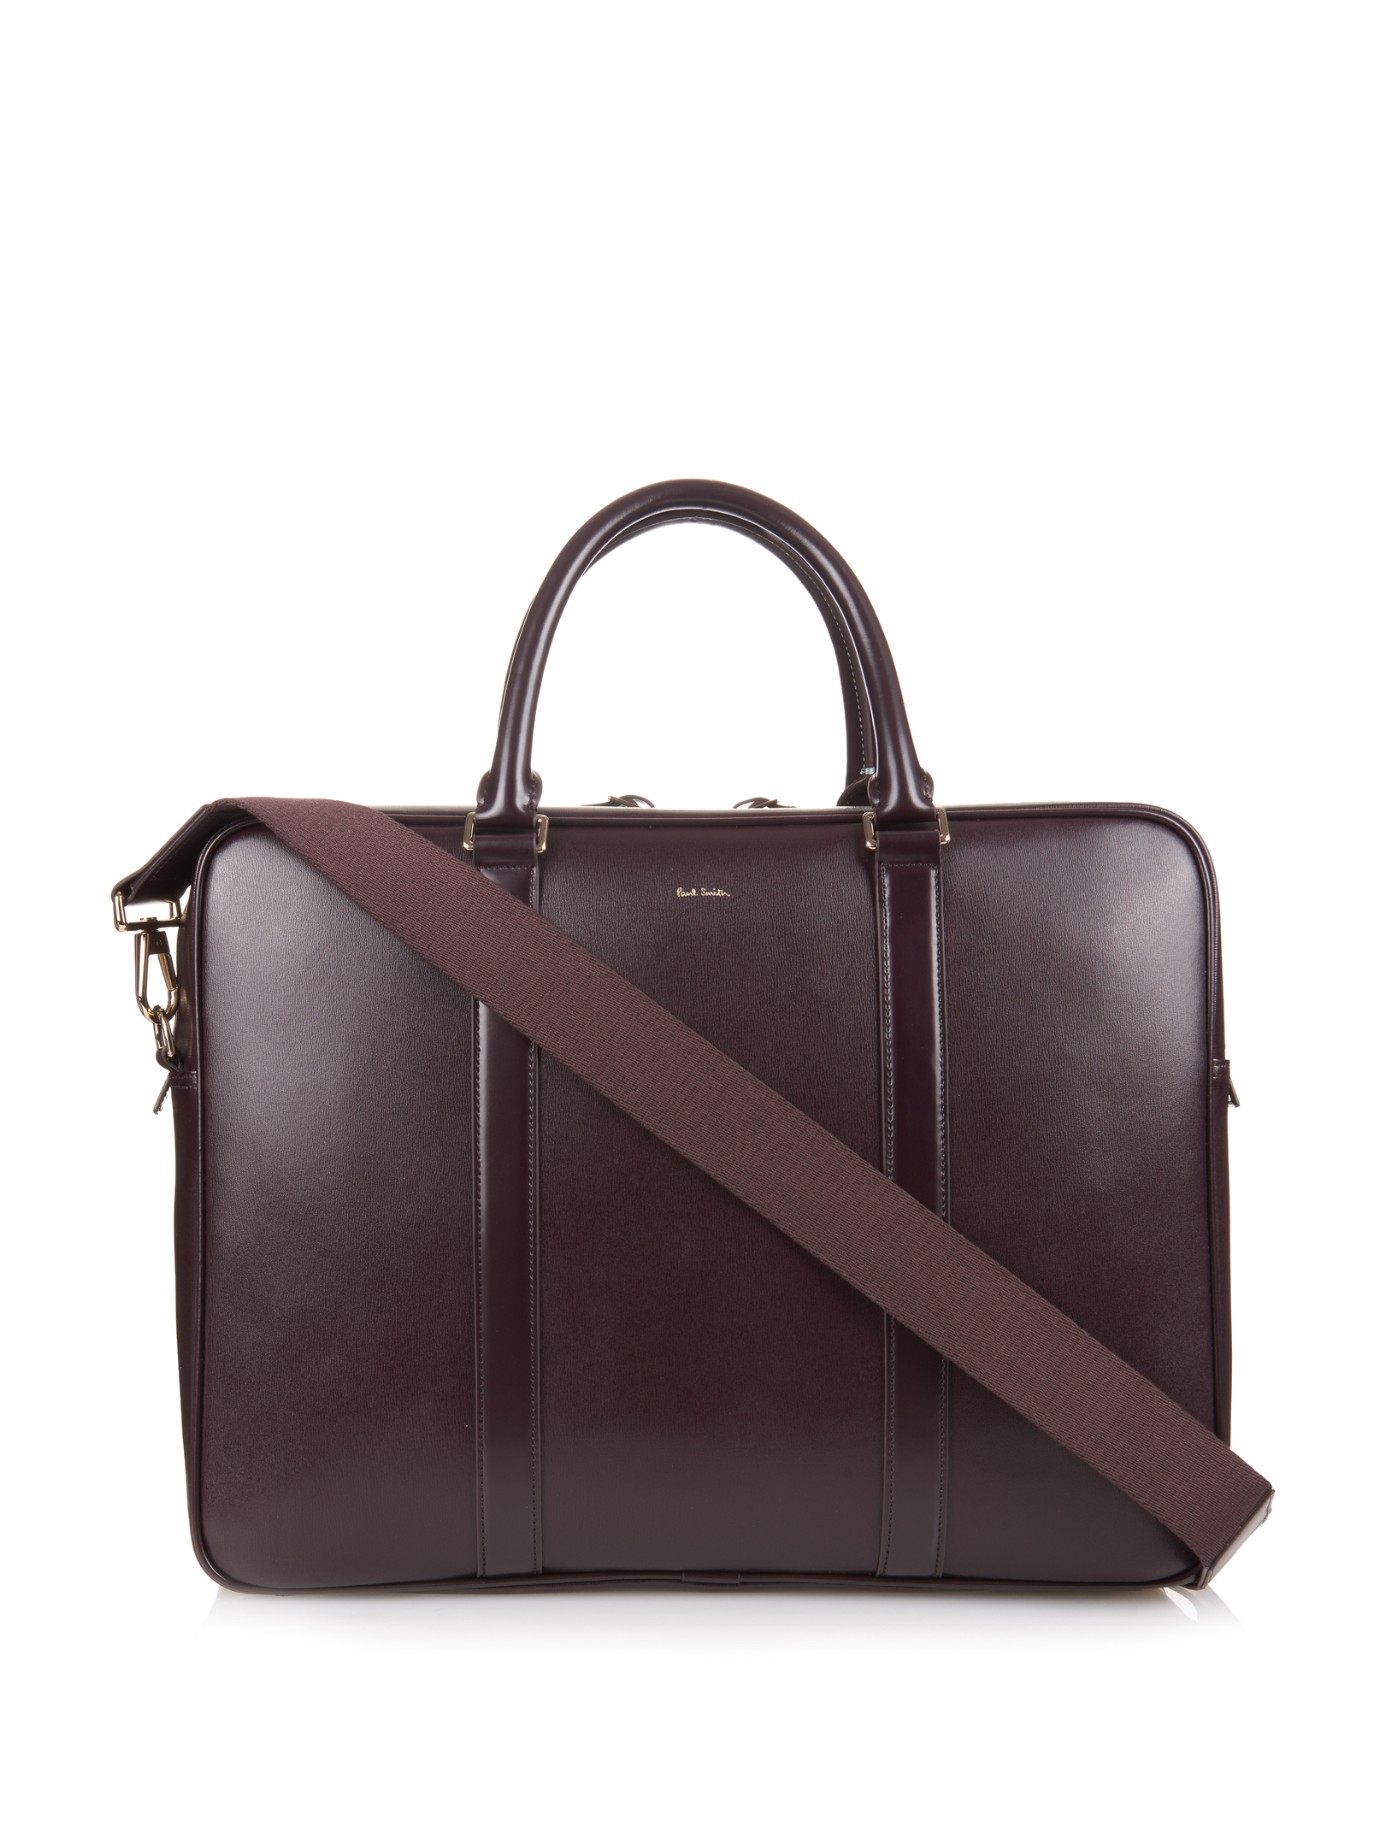 Lyst - Paul Smith Formal Leather Bag In Purple For Men